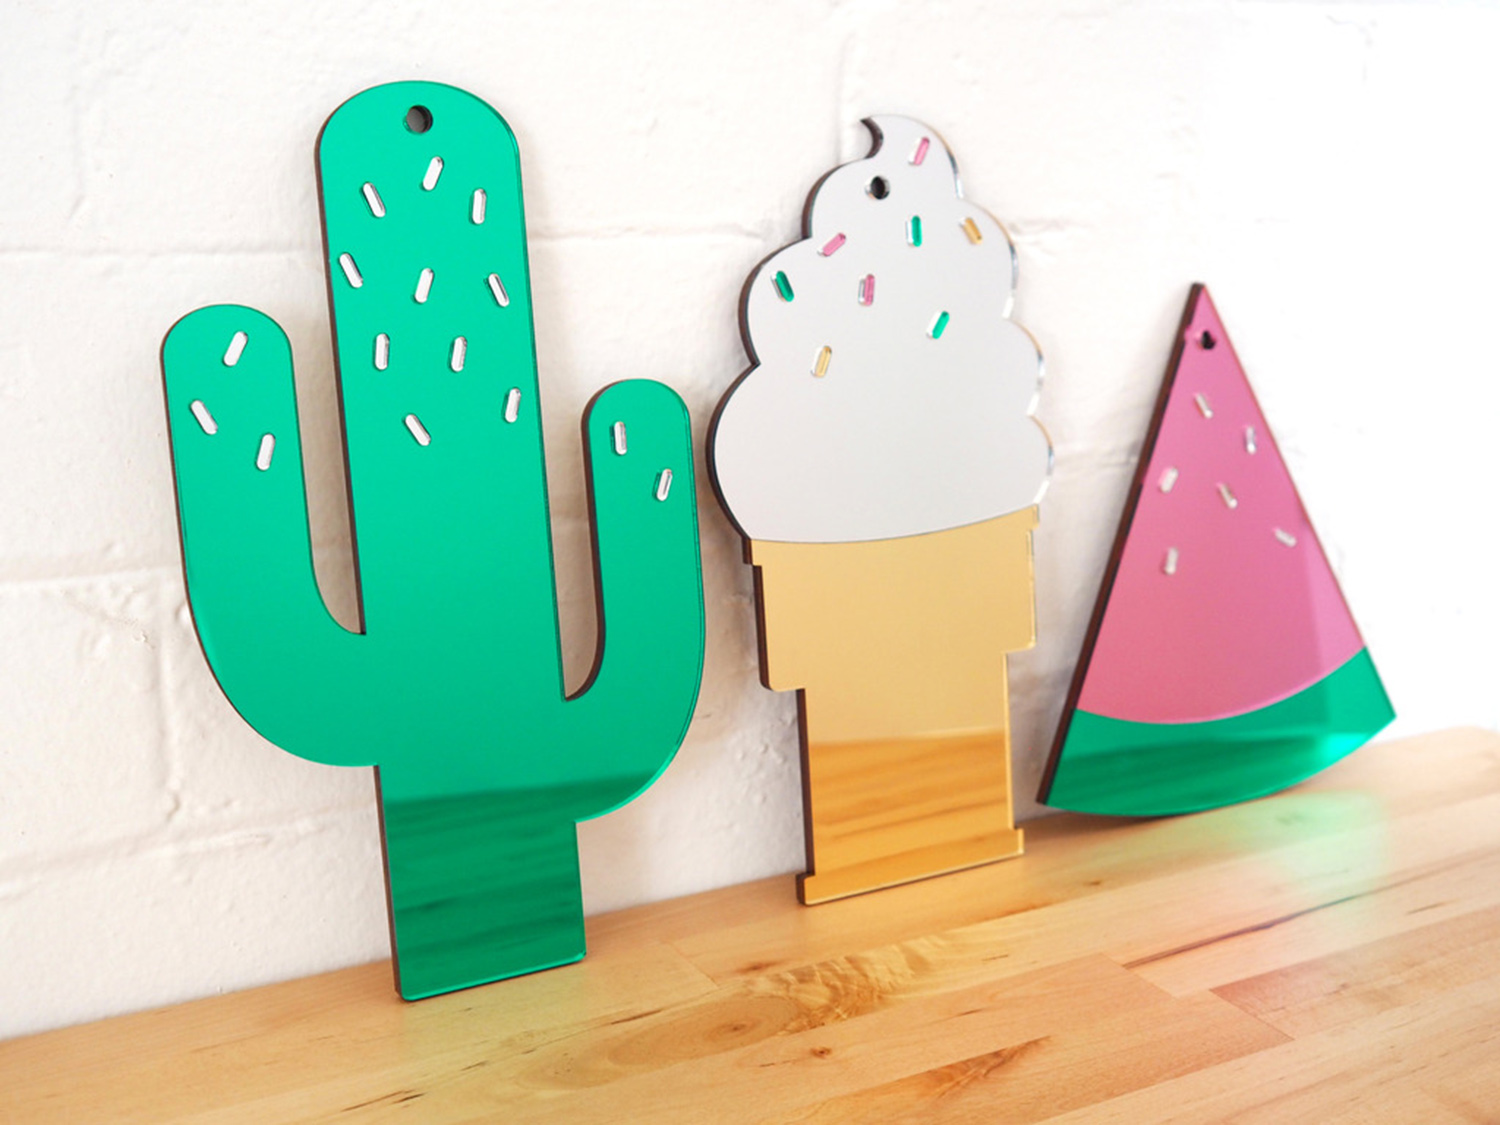 Cactus, watermelon, and ice cream mirrors by McKean Studio